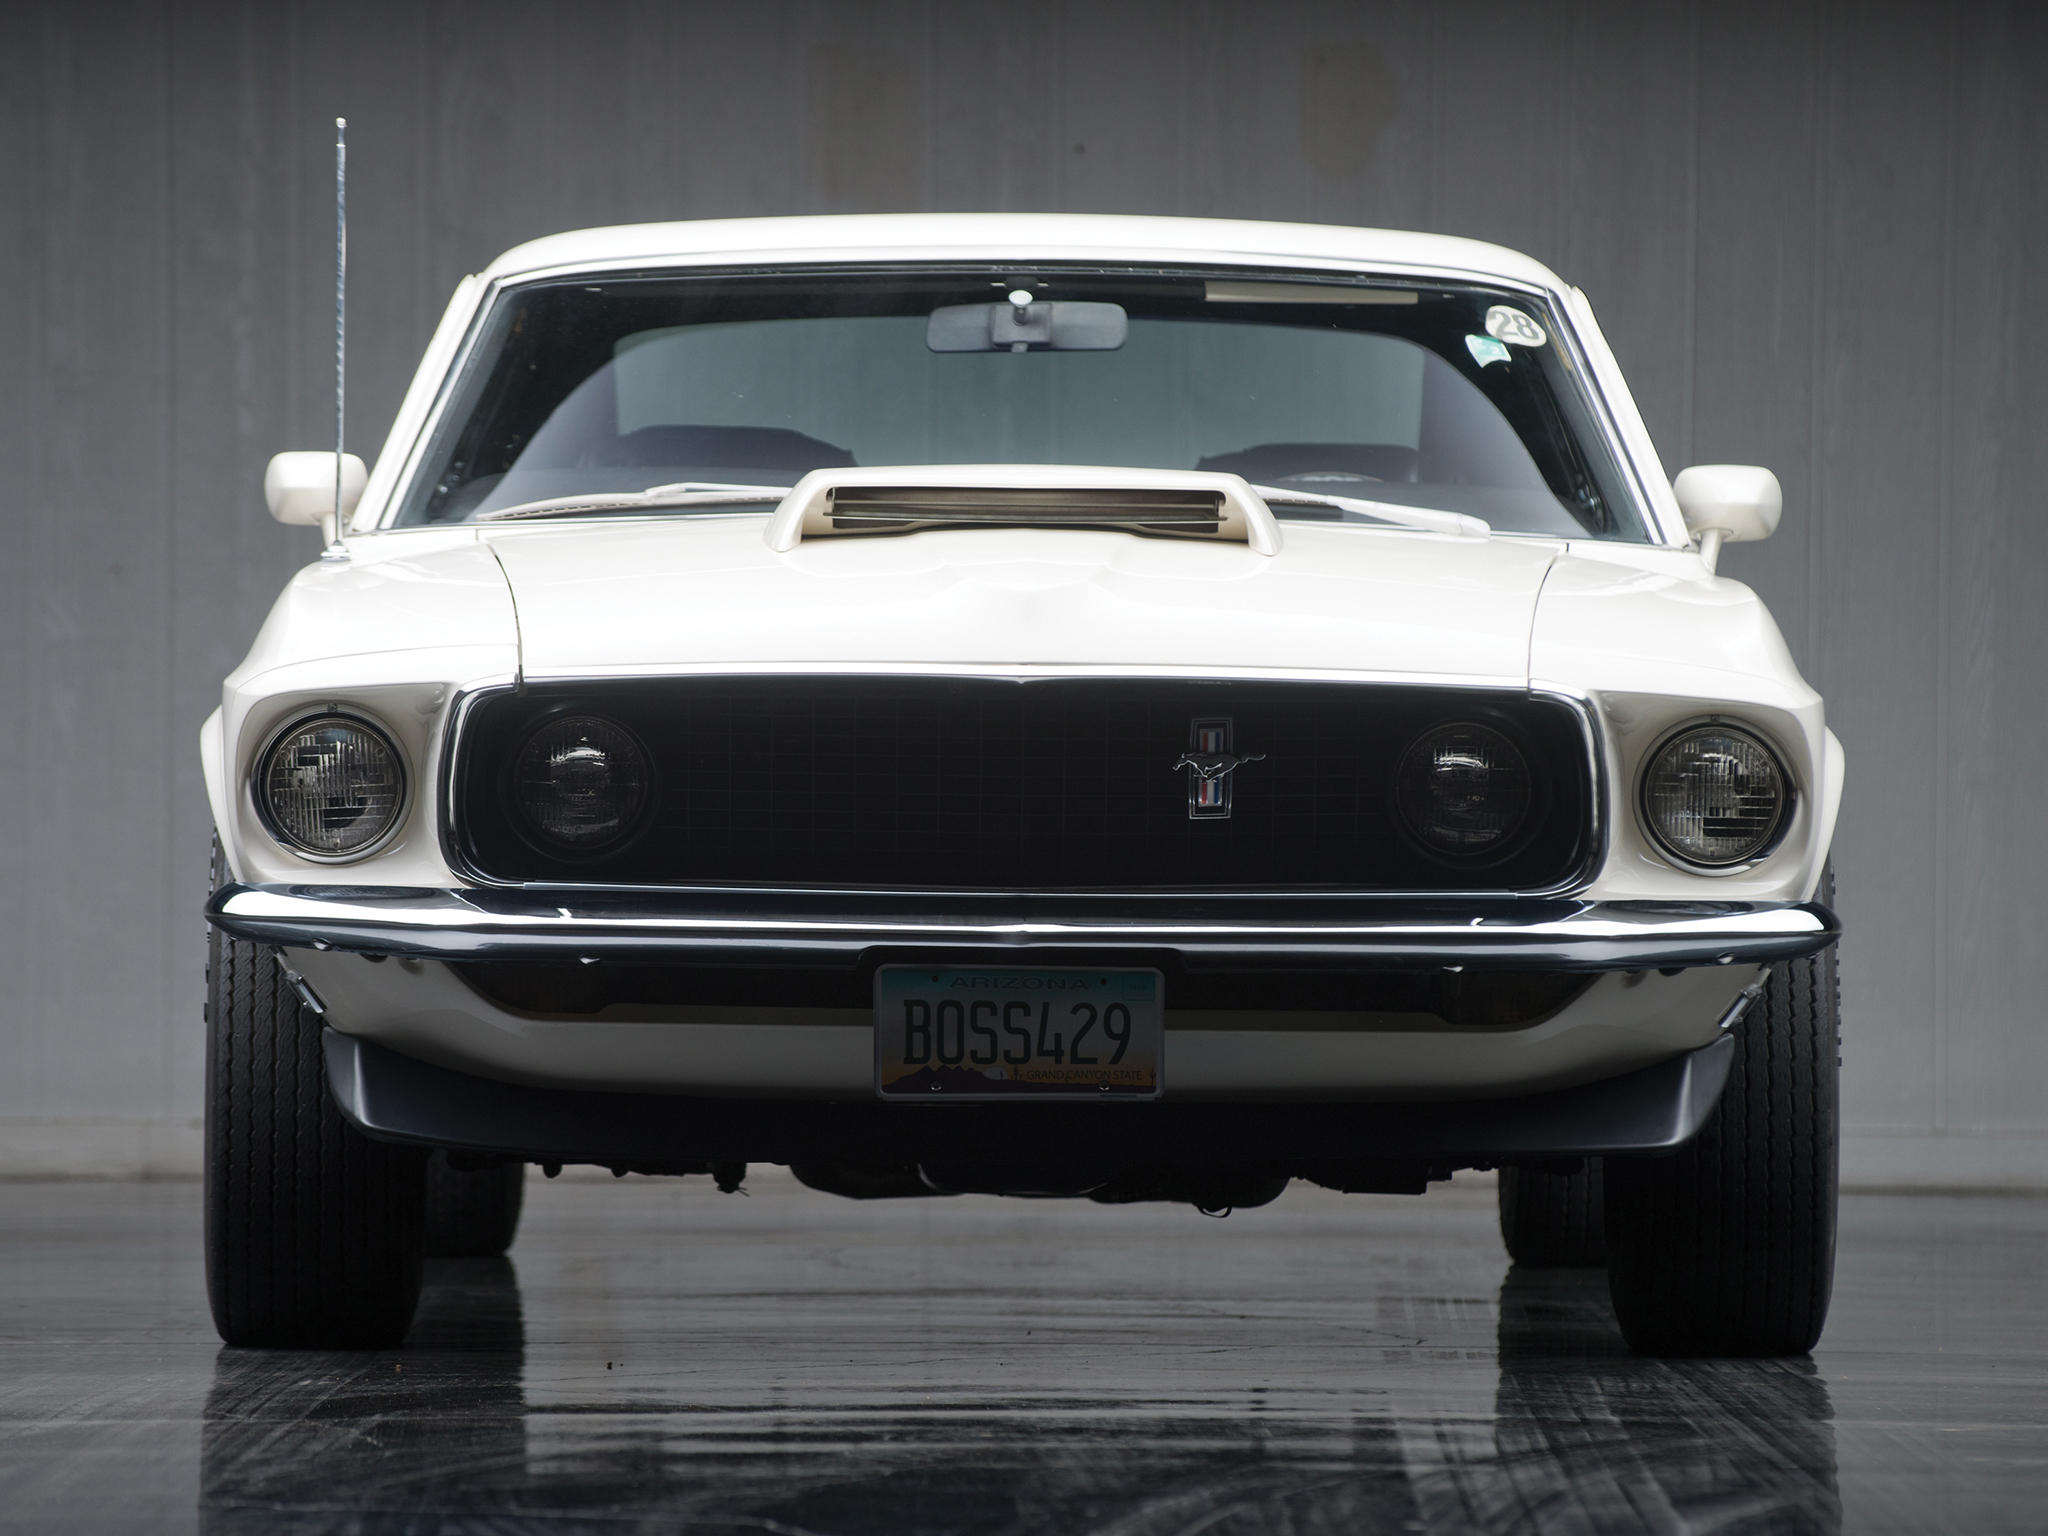 1969 mustang boss 429 ford muscle classic g wallpaper. Black Bedroom Furniture Sets. Home Design Ideas